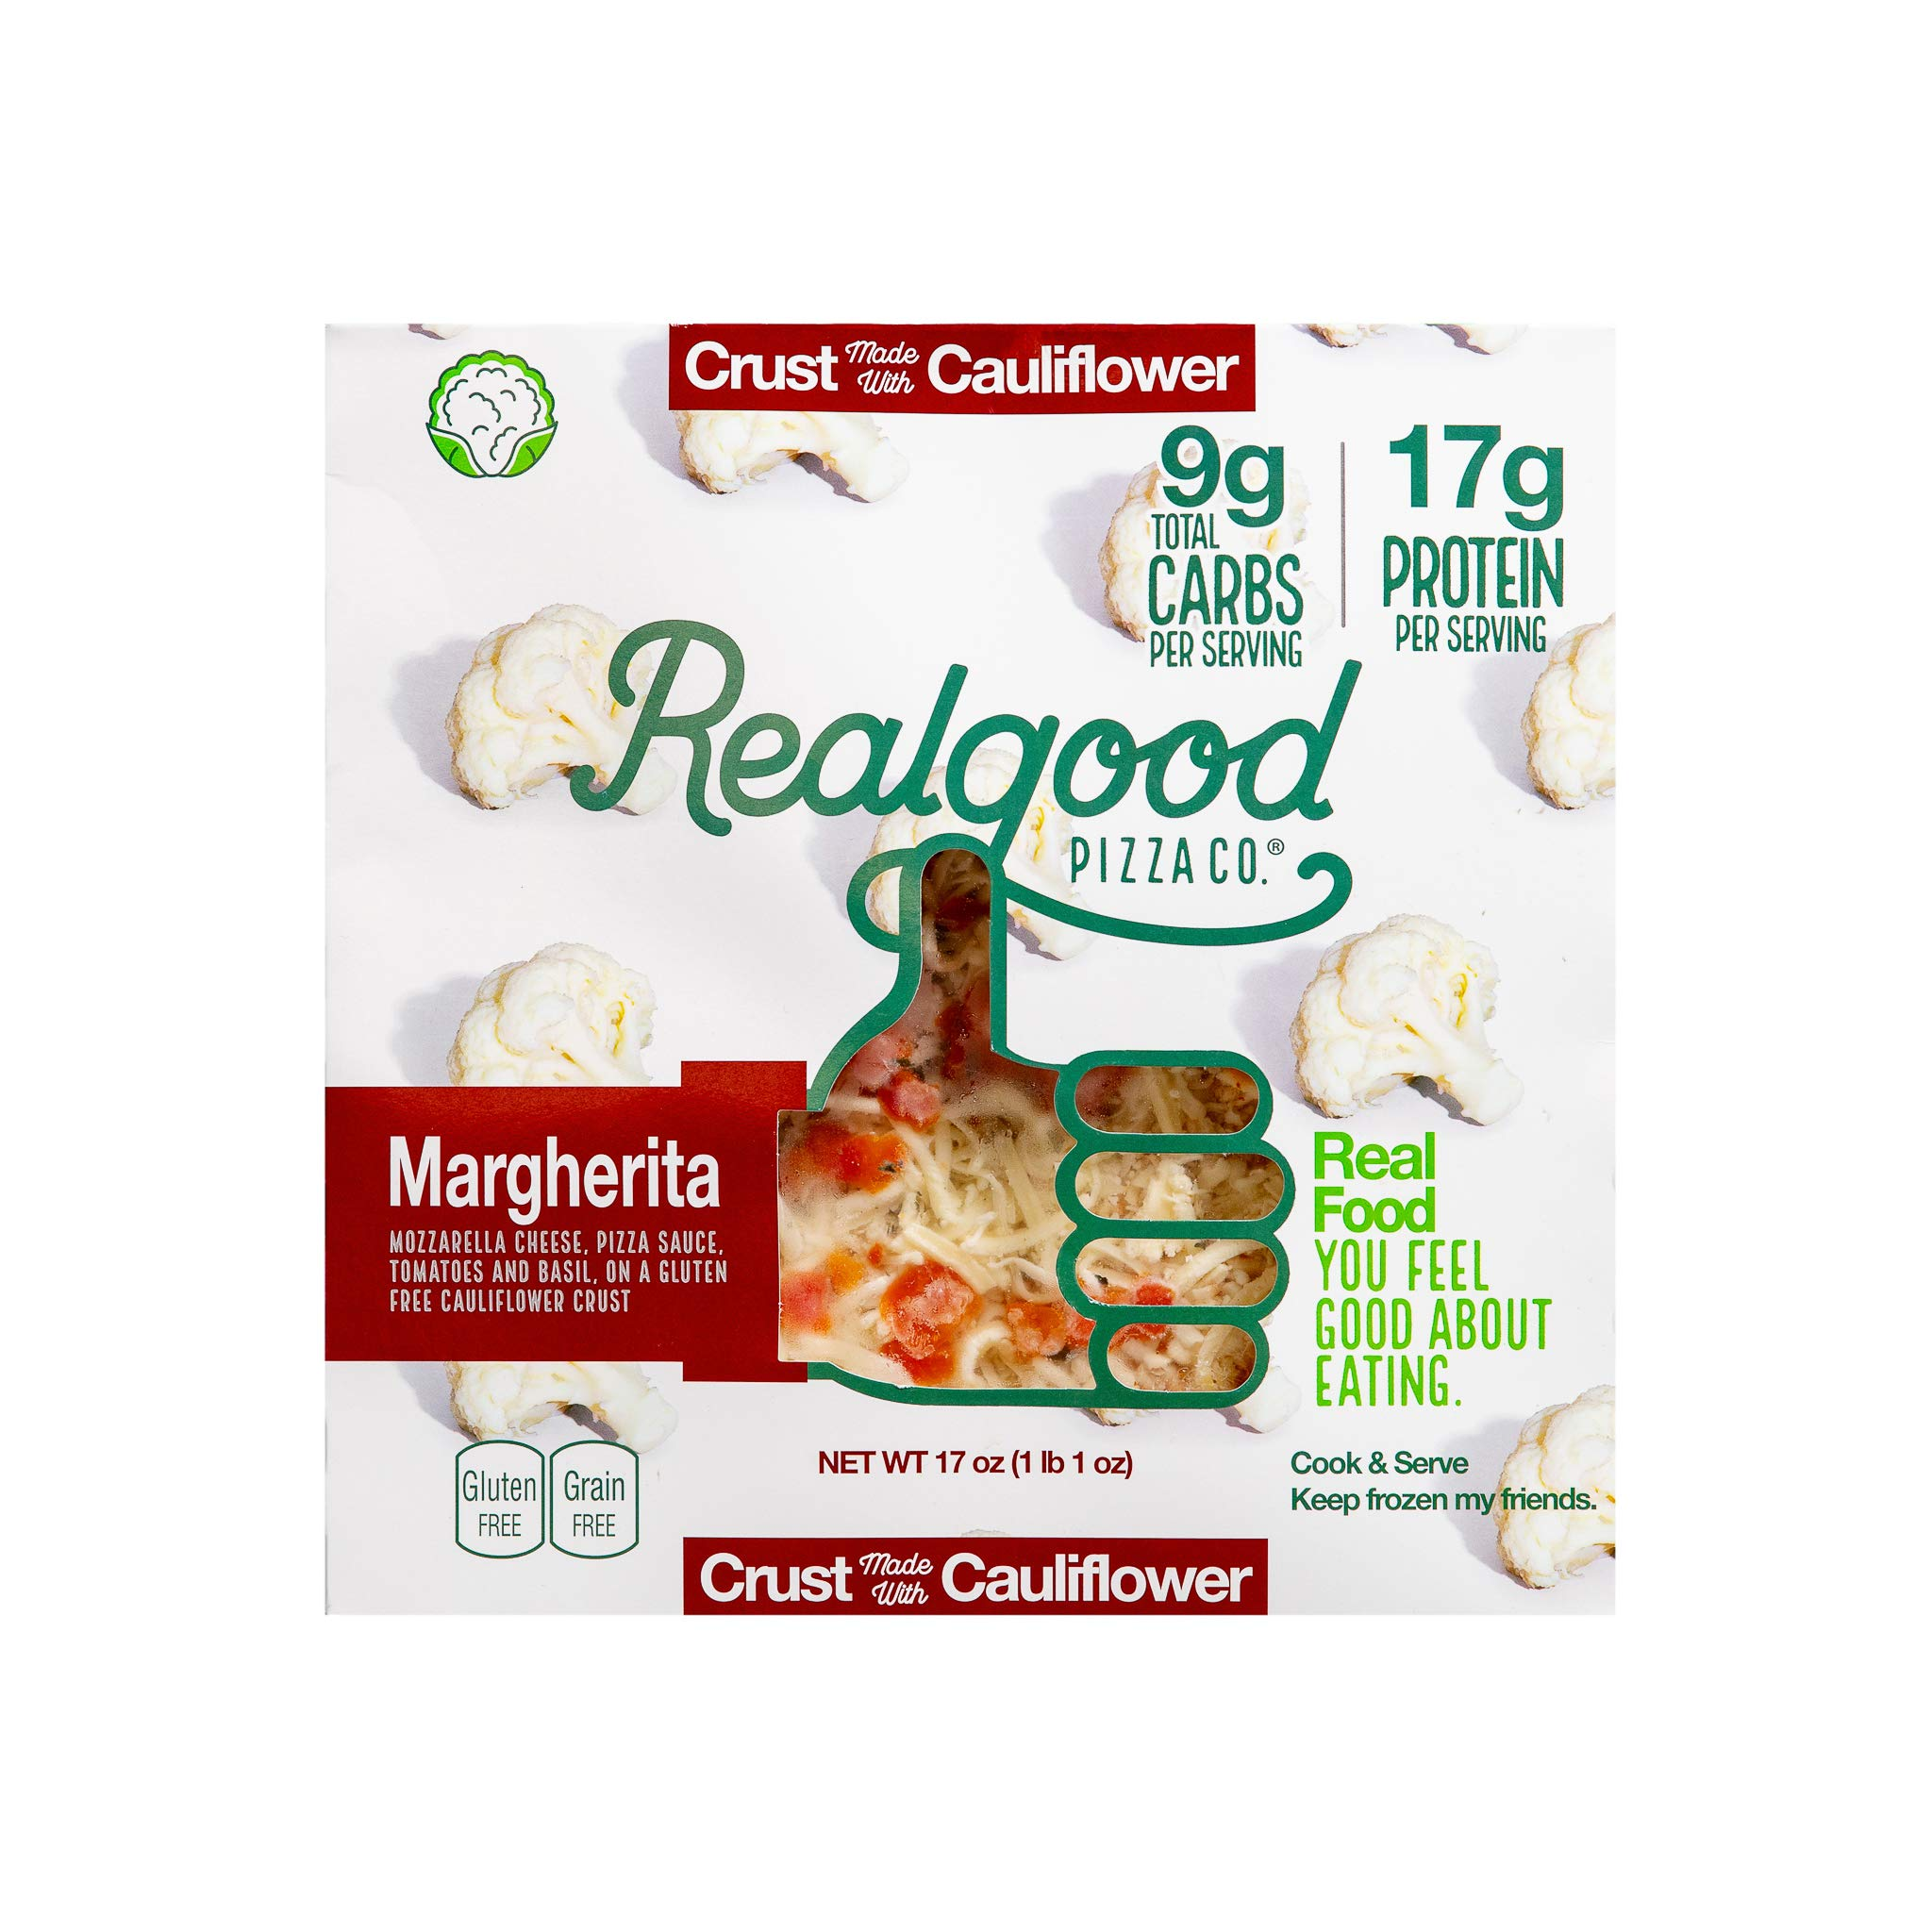 Real Good Foods, Low Carb - High Protein - Gluten Free - 11'' Cauliflower Crust Pizza, Margherita (4 Count) by Real Good Foods